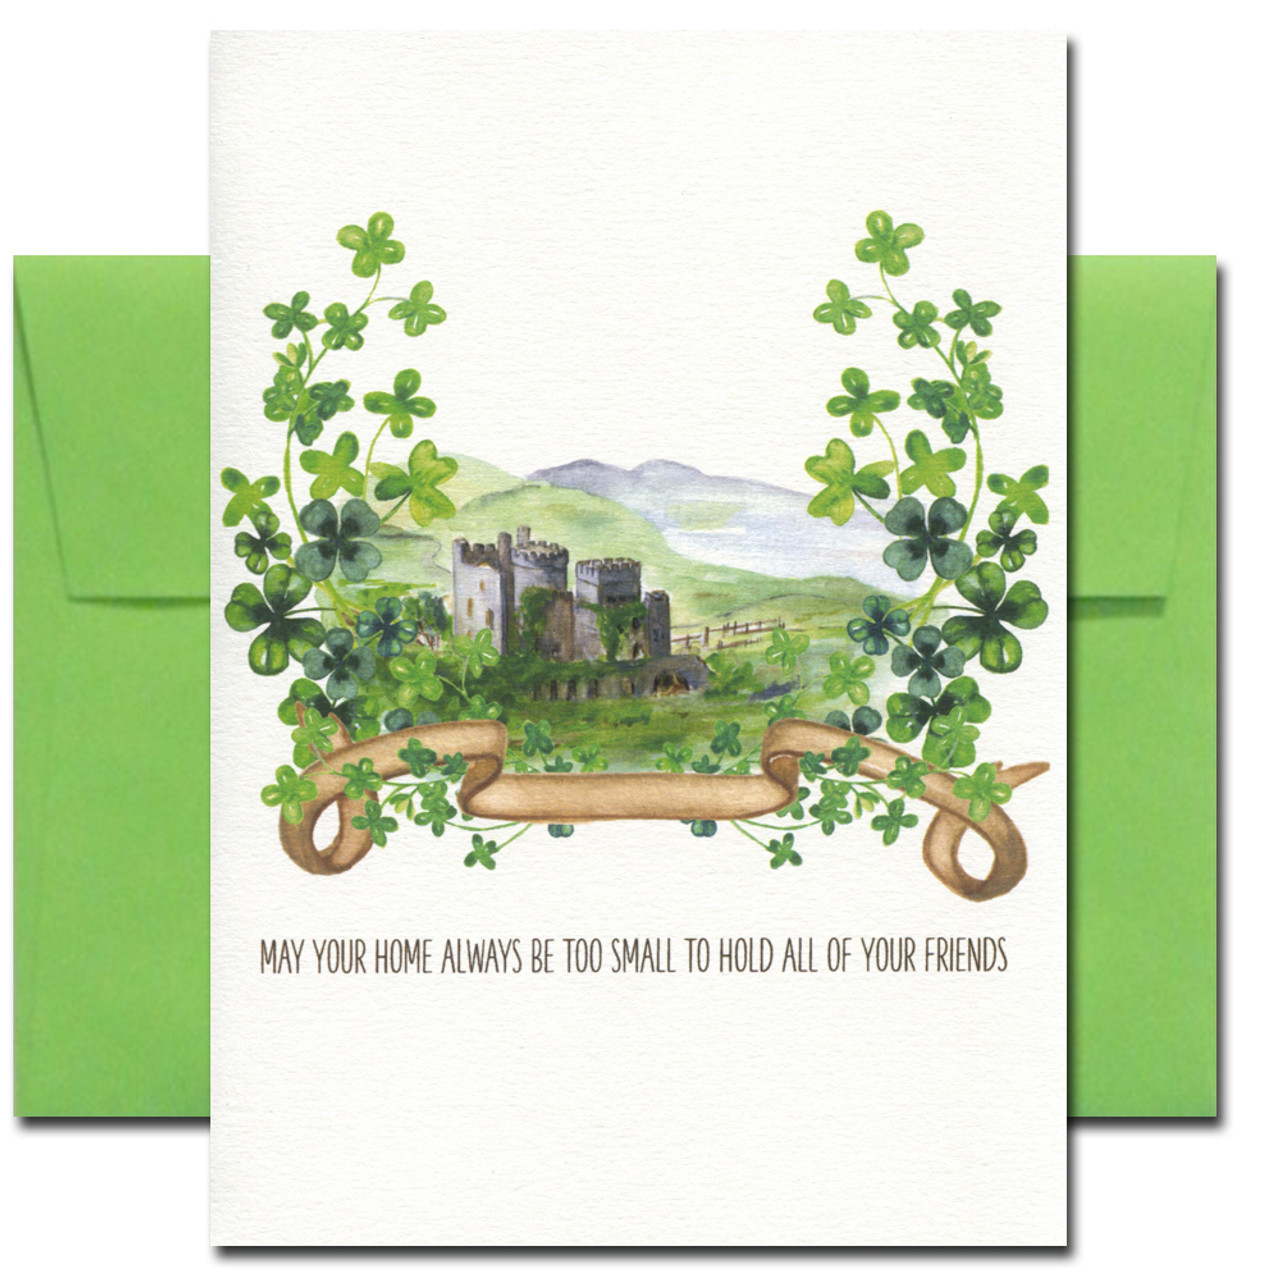 Saint Patrick's Day card shows a castle and the saying: May your home always be too small to hold all of your friends